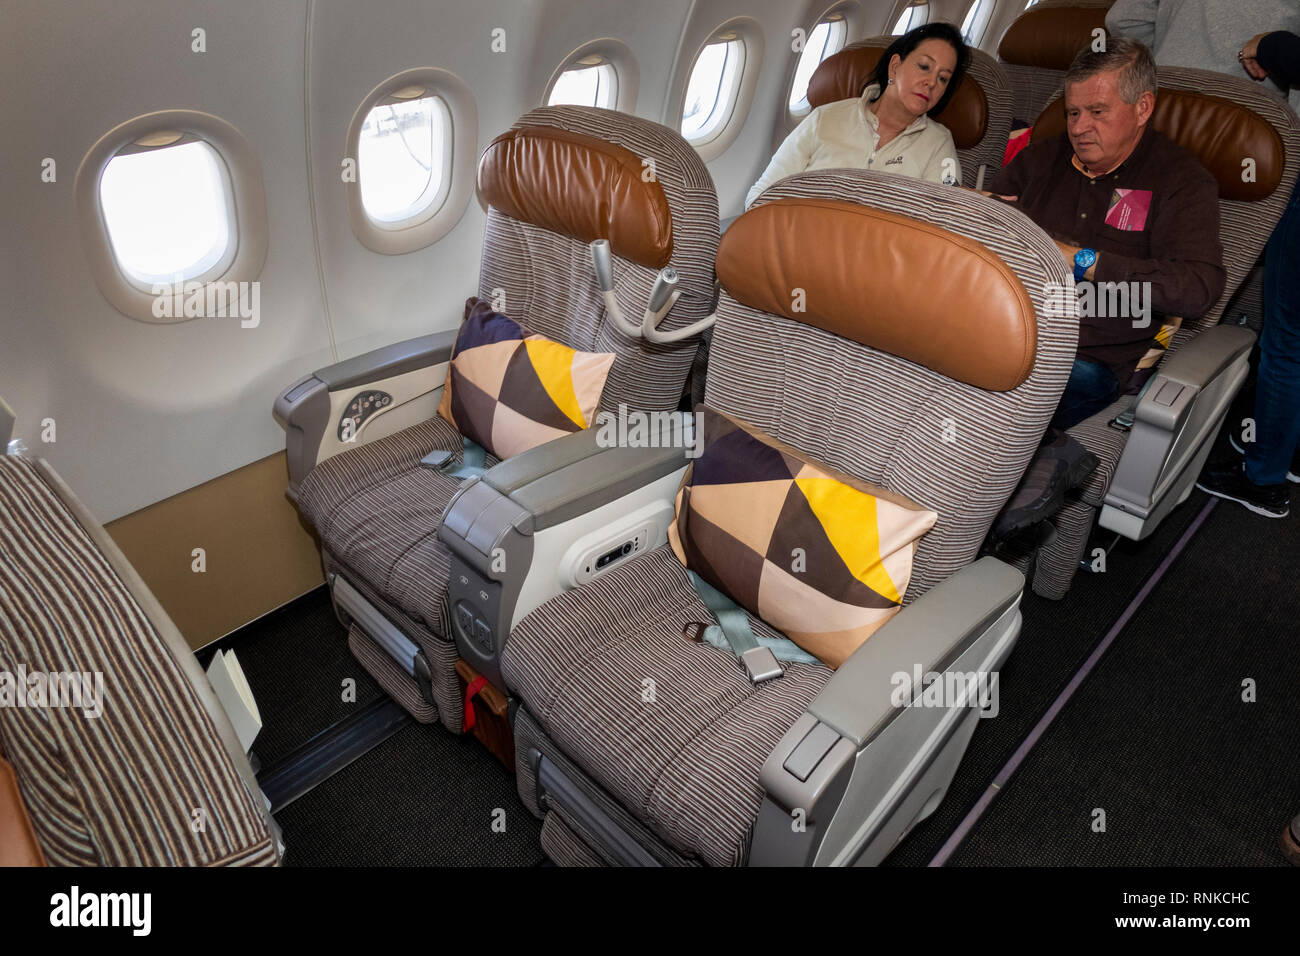 Air Travel, Etihad Airways Airbus A320 aircraft, Business Class cabin, seats for short-haul flight - Stock Image